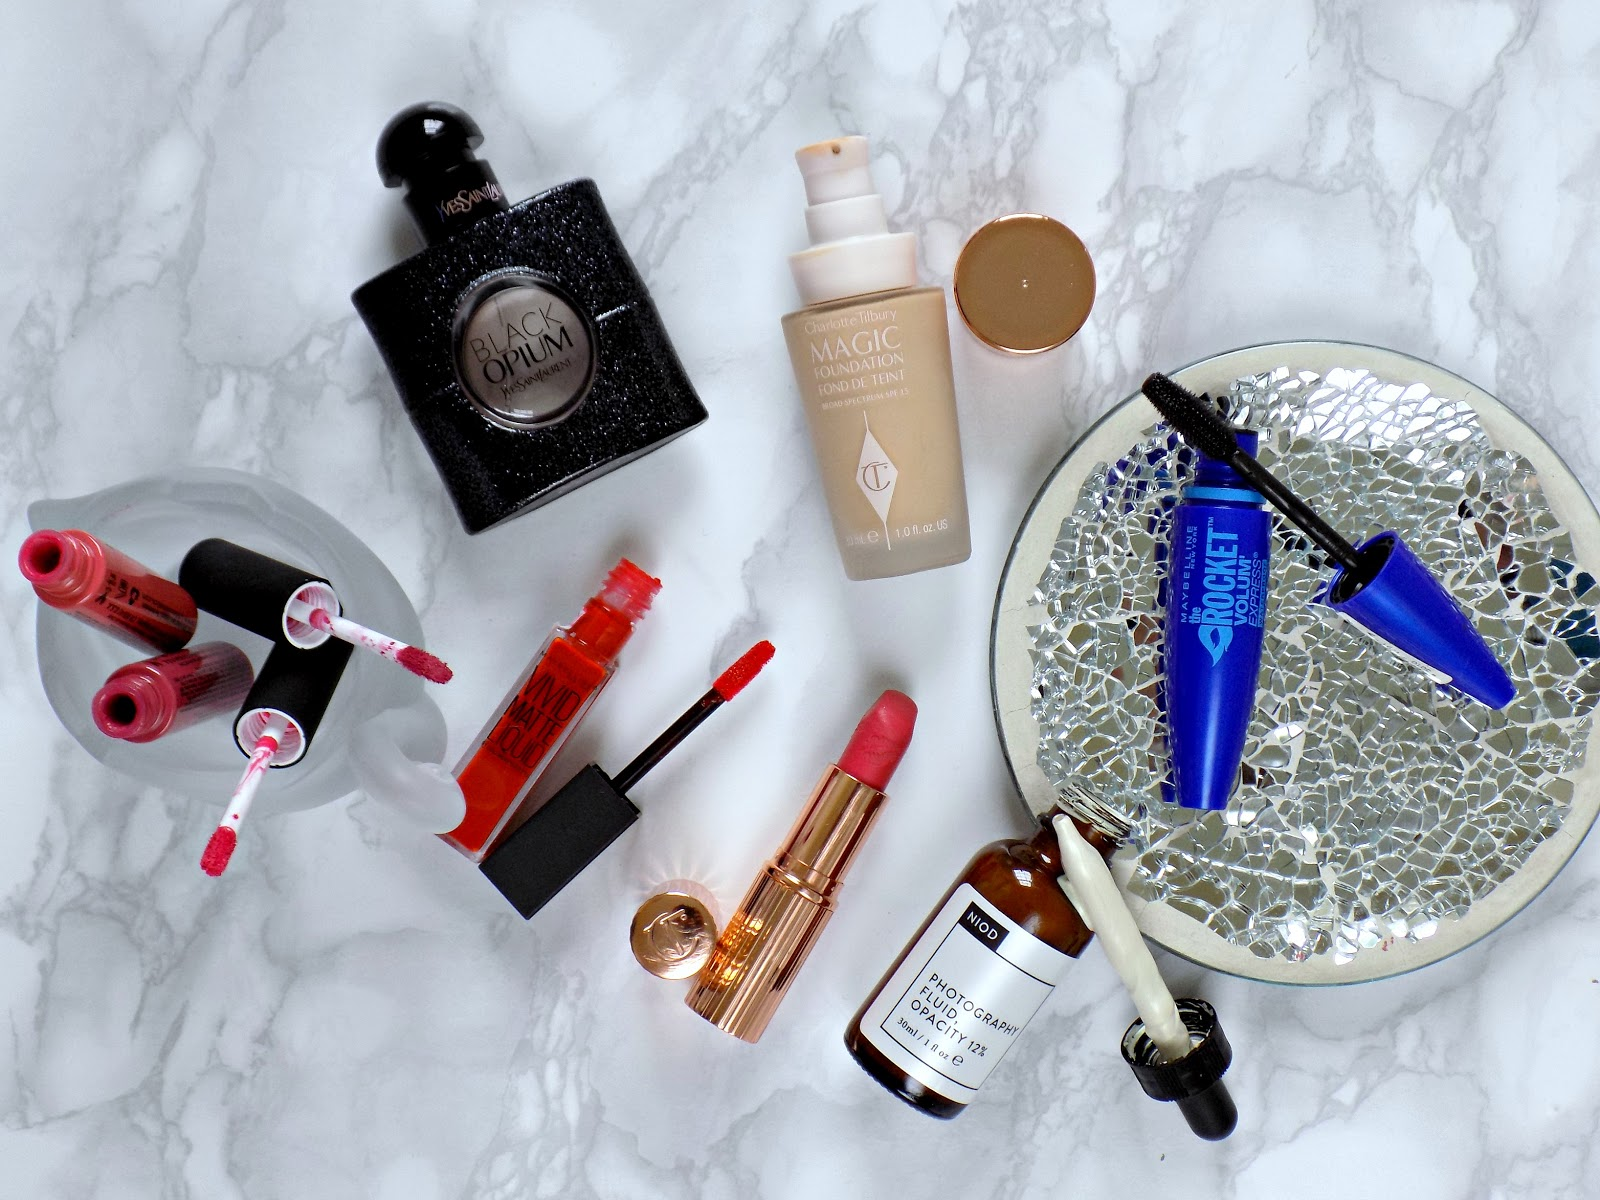 Disappointing products , Charlotte Tilbury Magic Founadtion, NIOD Photograhy Fluid and more